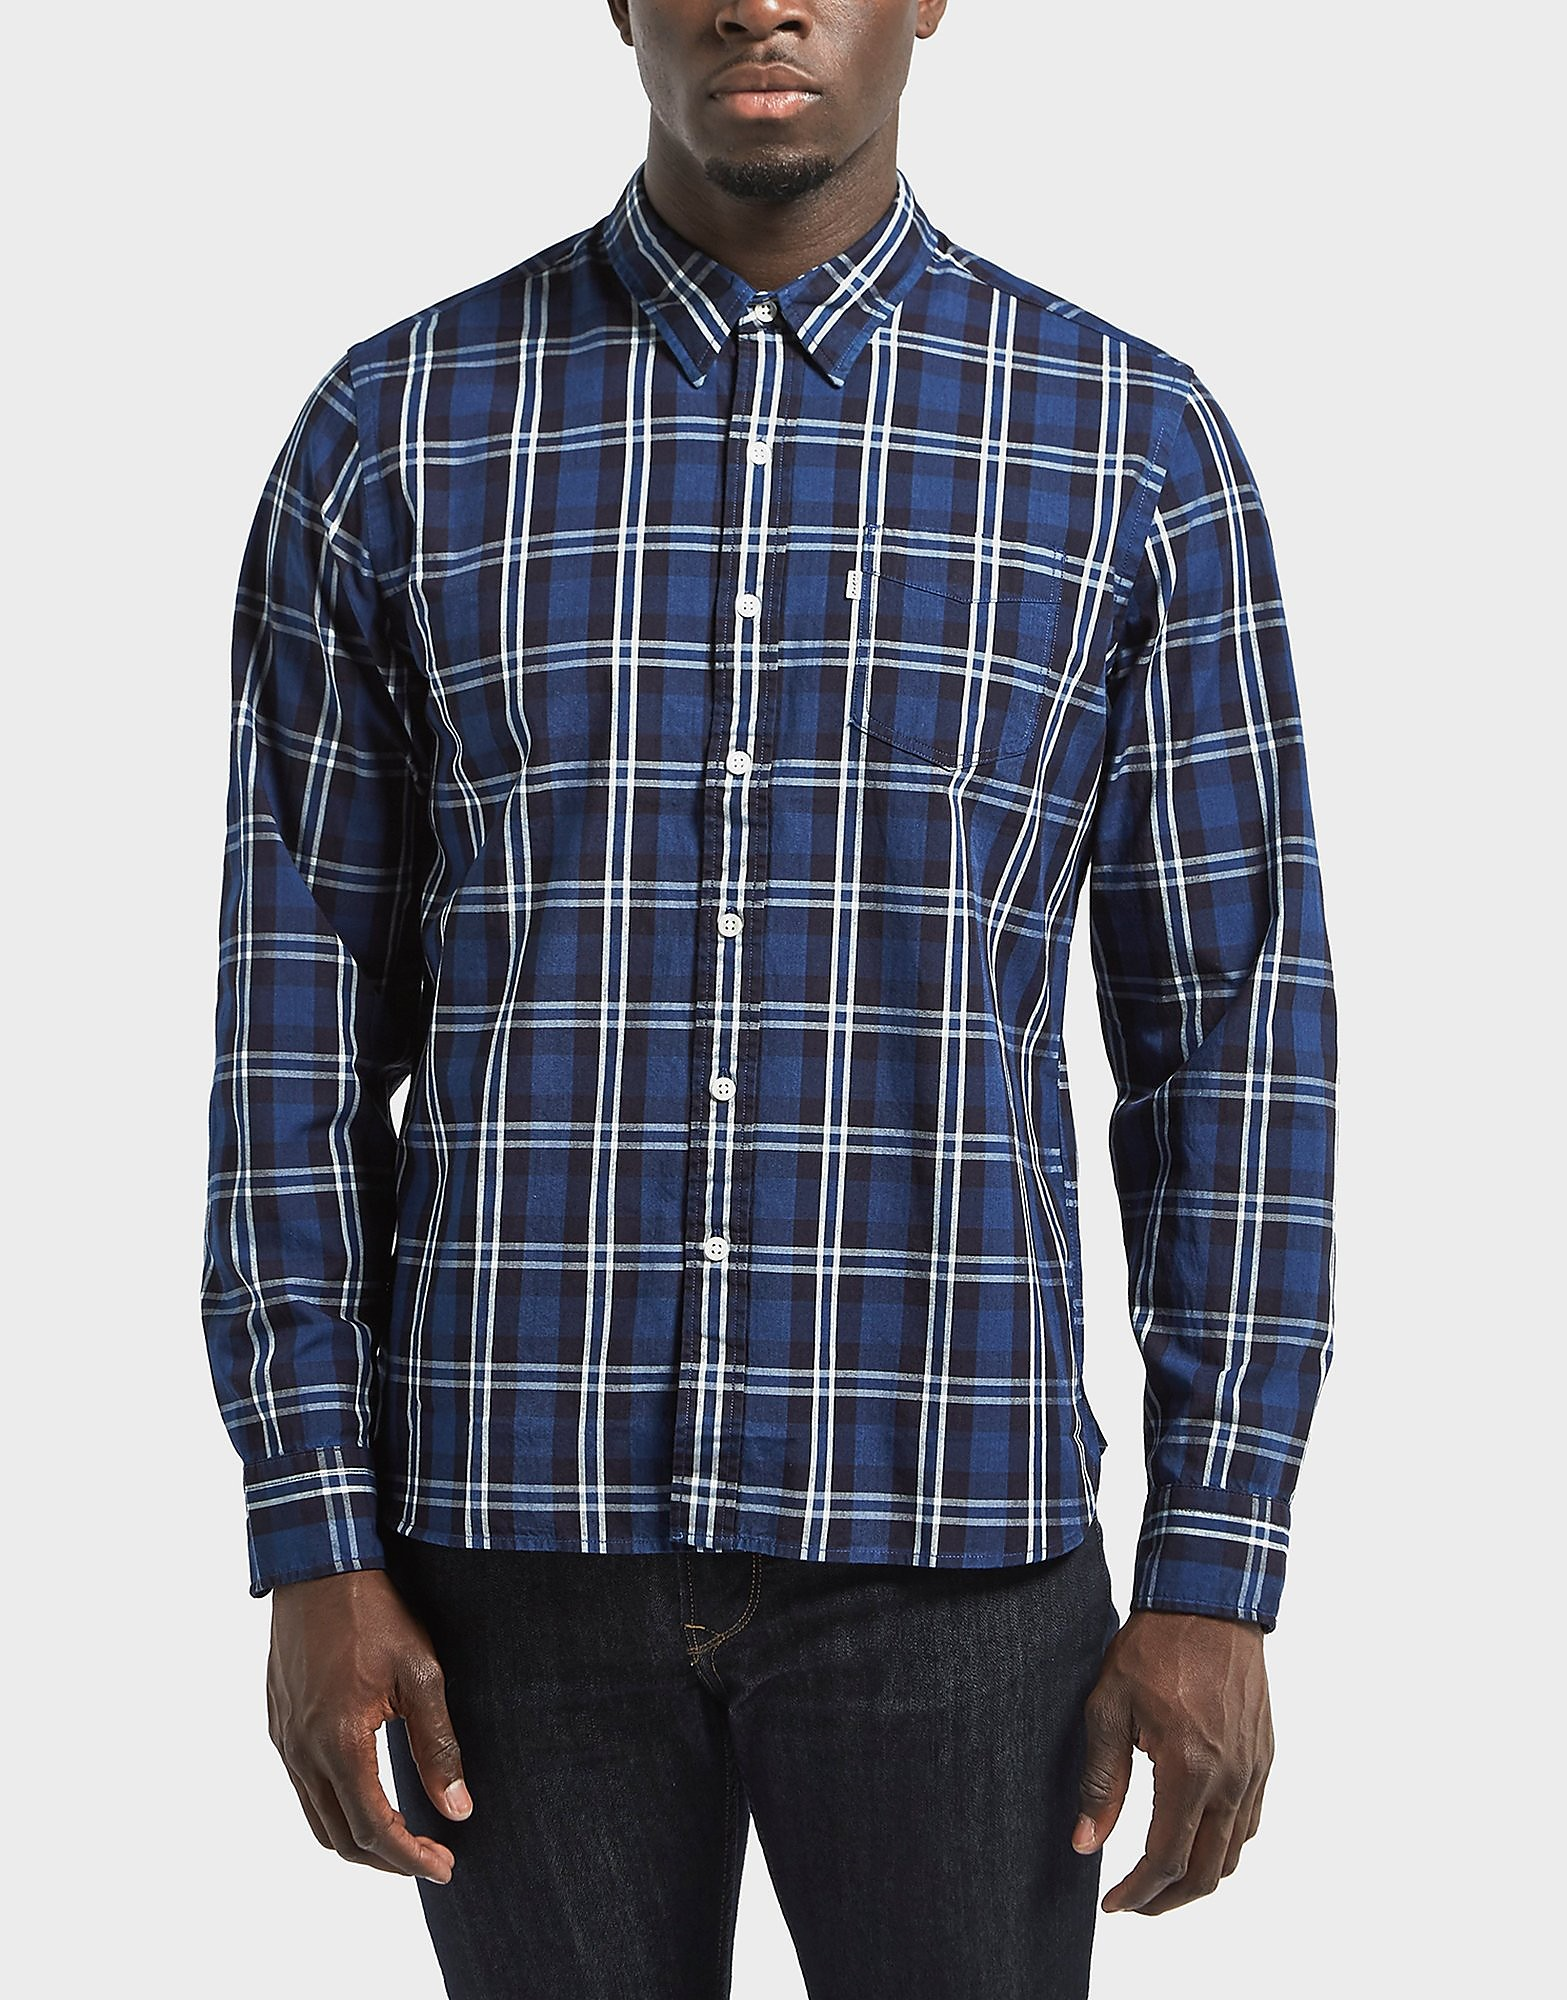 Levis Sunset Check Long Sleeve Shirt